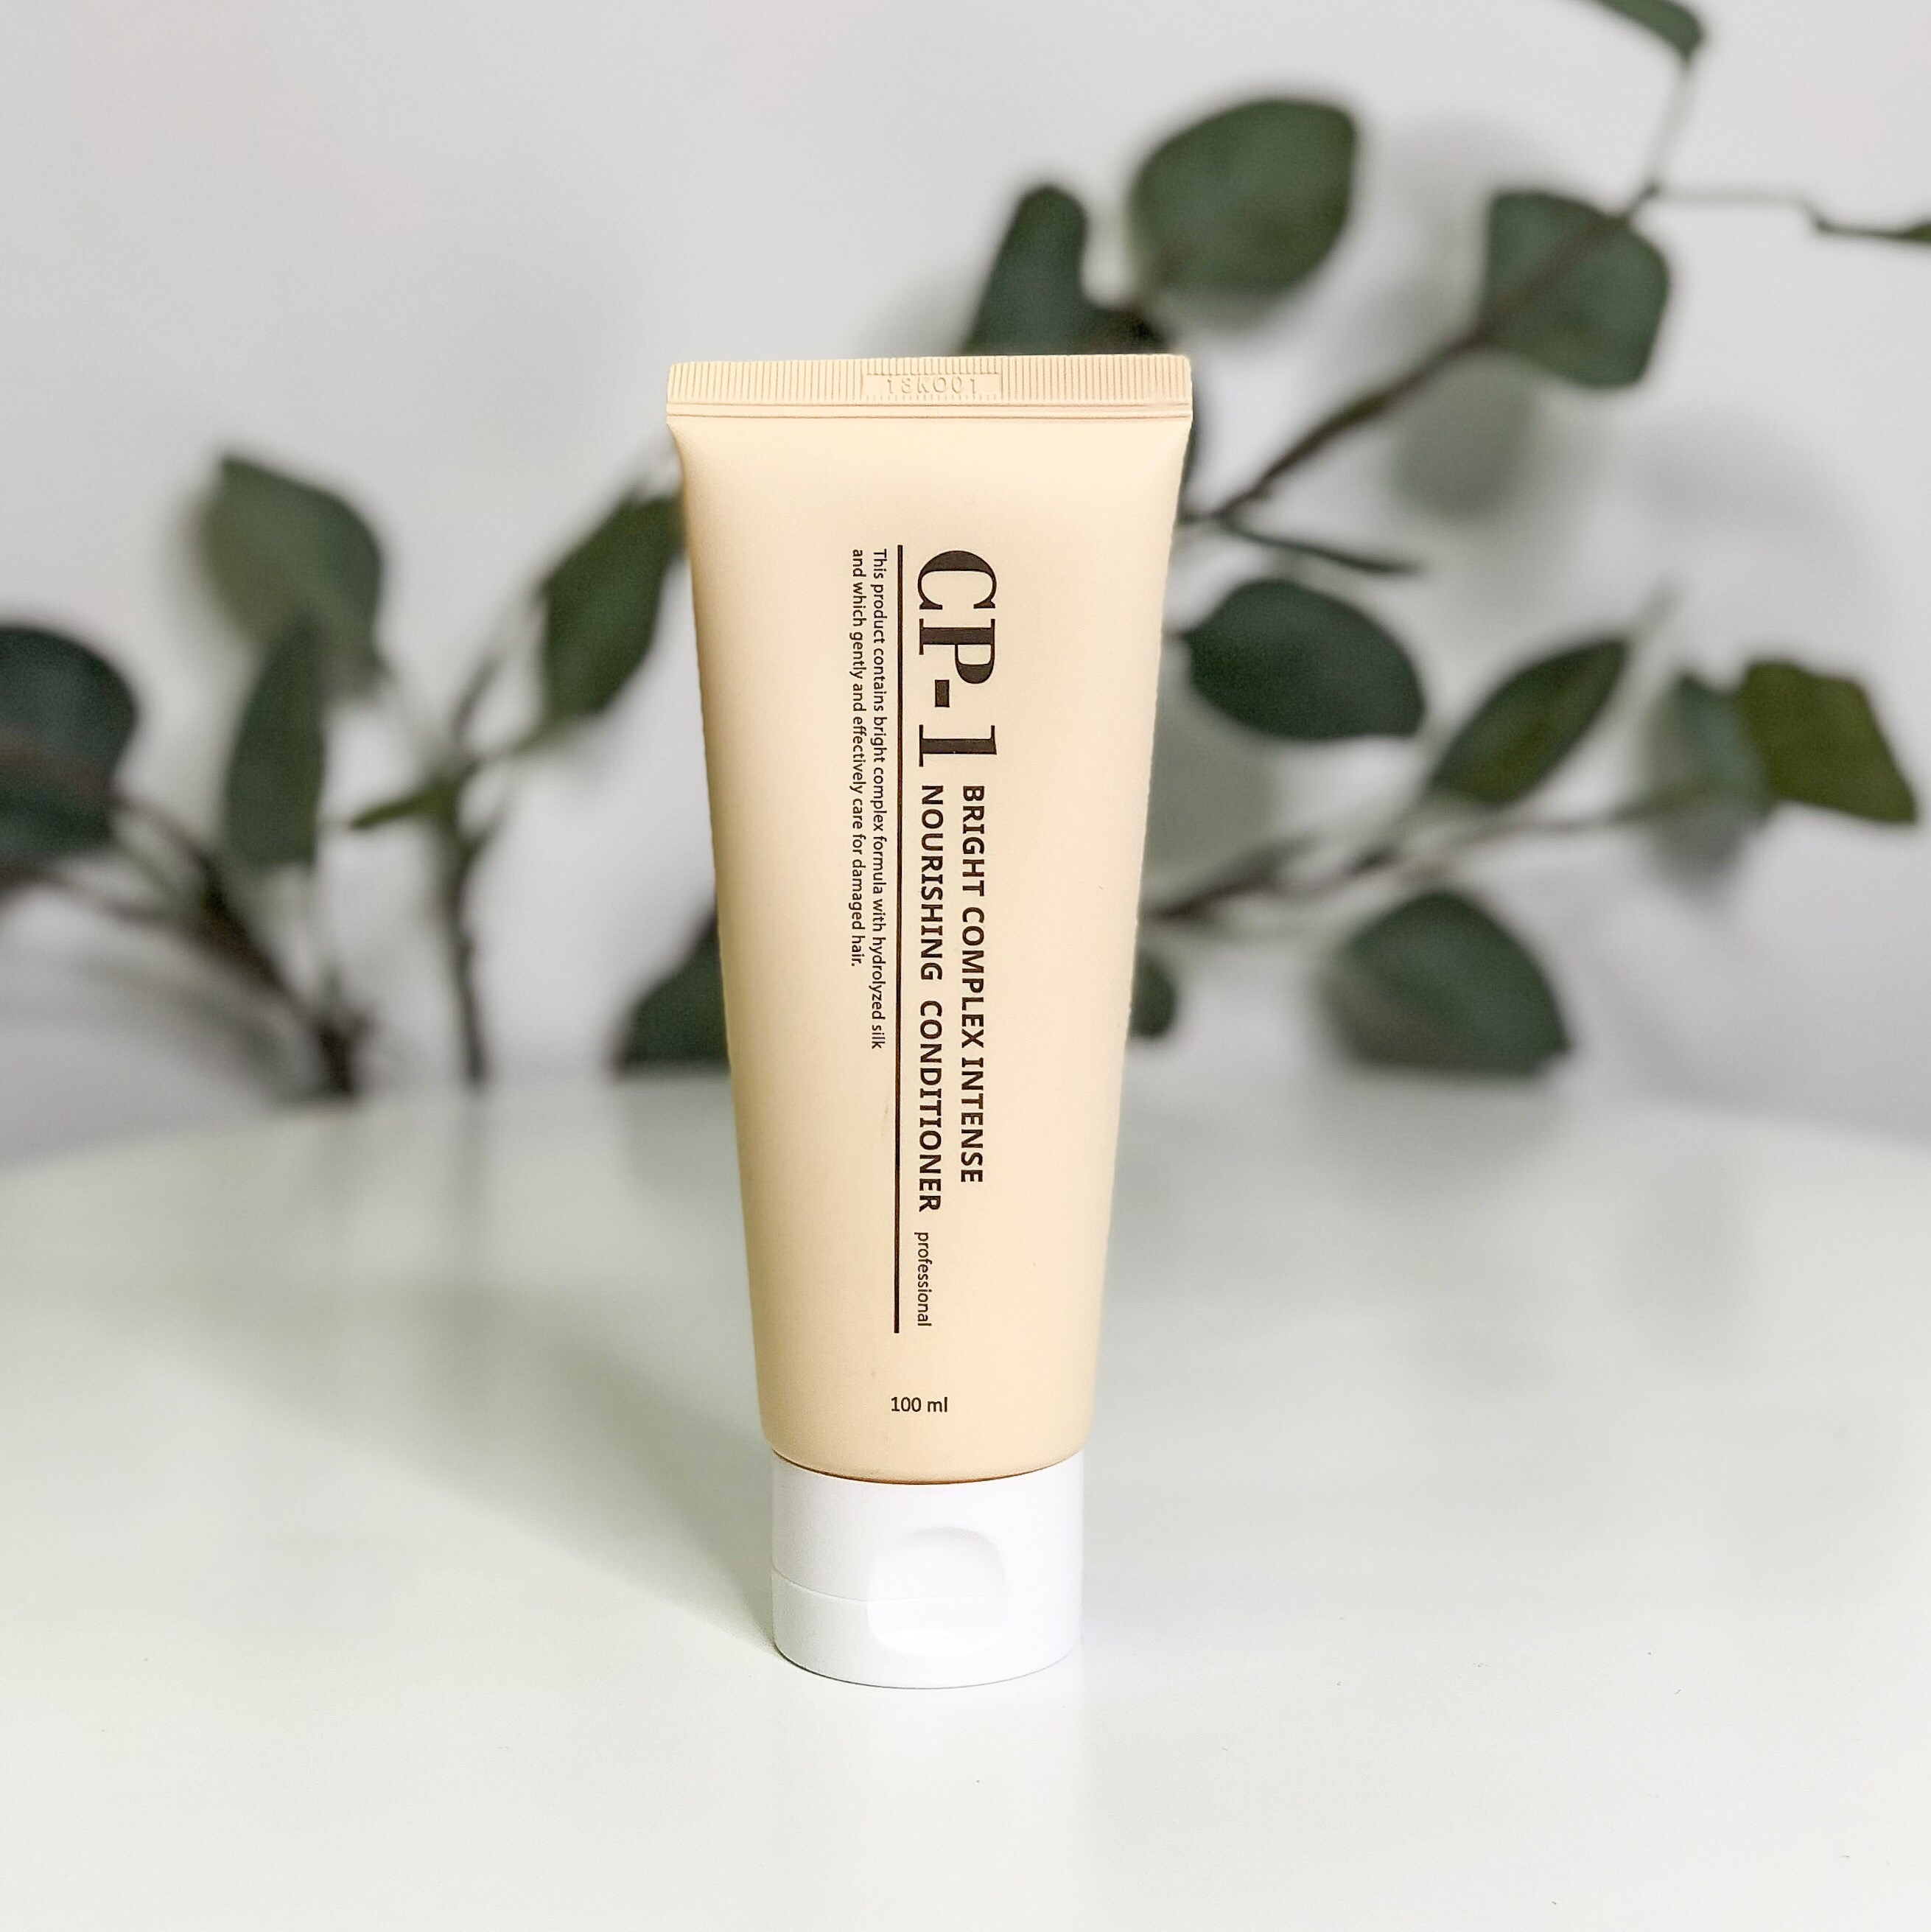 CP-1 BRIGHT COMPLEX INTENSE NOURISHING CONDITIONER